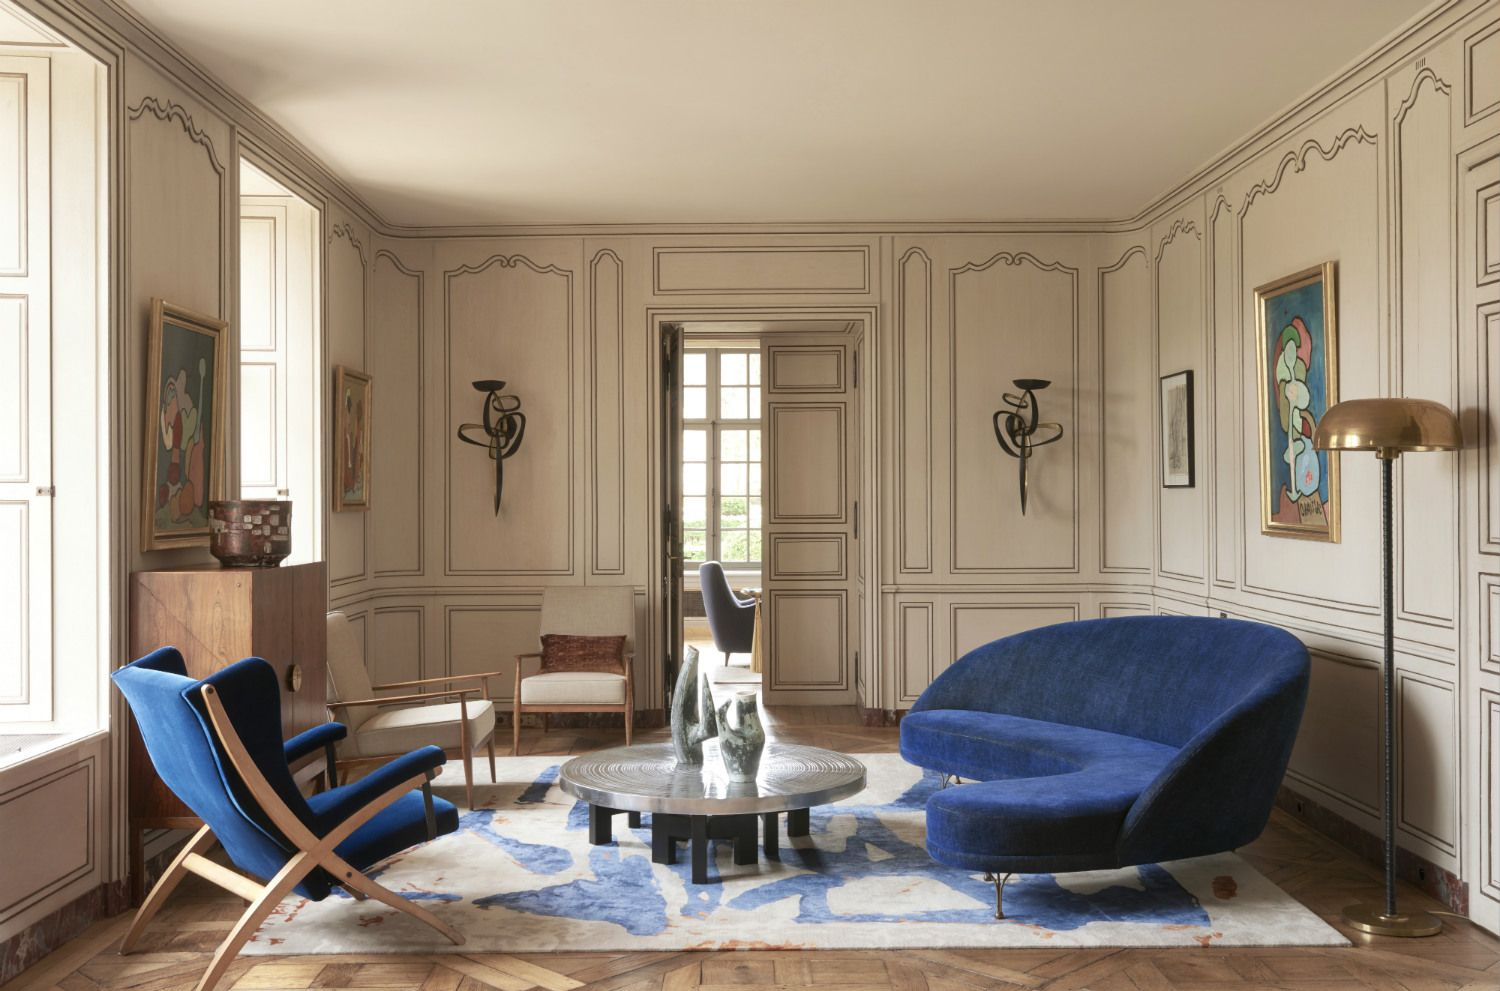 Home Tour: A French Château With An Incredible Sense of Style